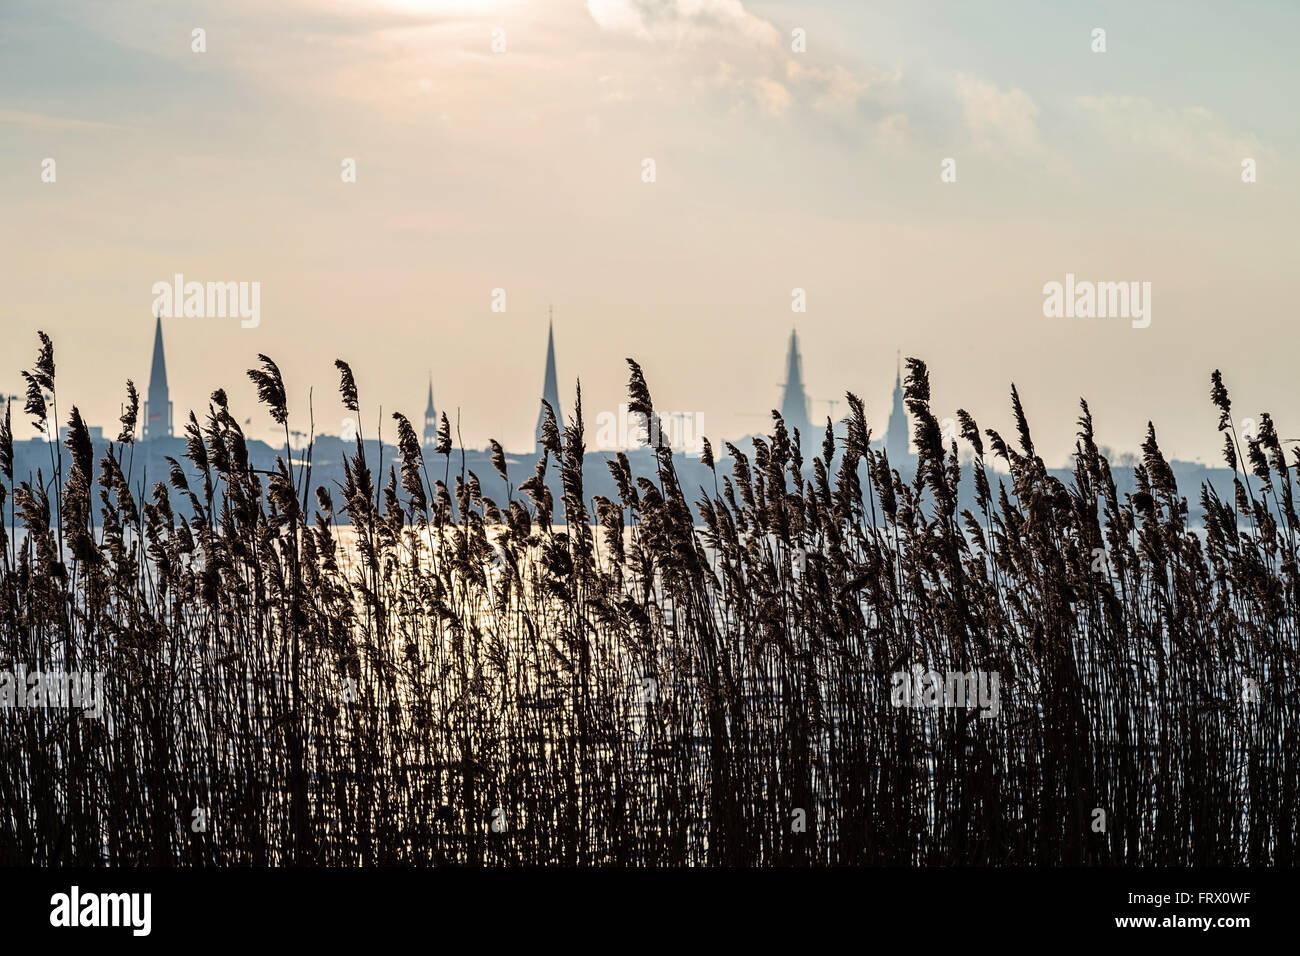 High grass against Hamburg silhouette at dawn - Stock Image